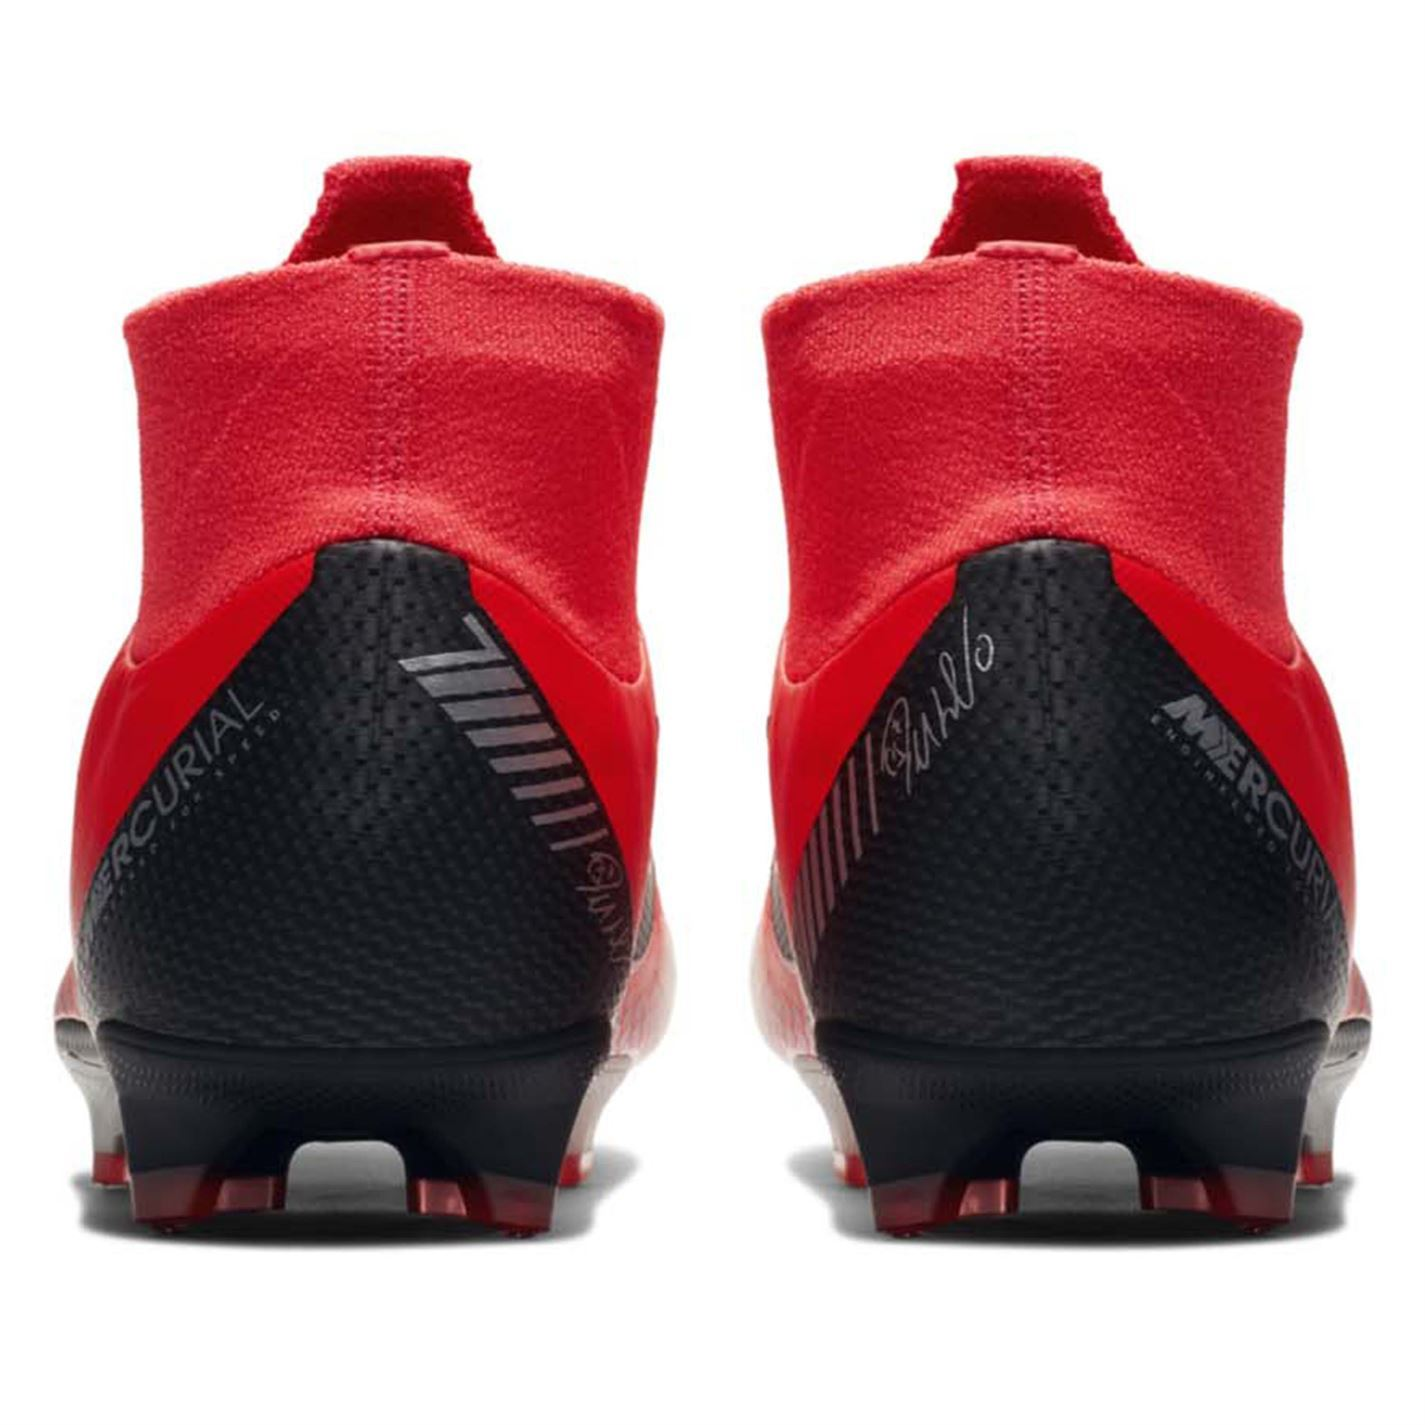 3bbeeaa55a9 Nike Mercurial Superfly Pro CR7 Firm Ground Football Boots Mens Red Soccer  Cleat